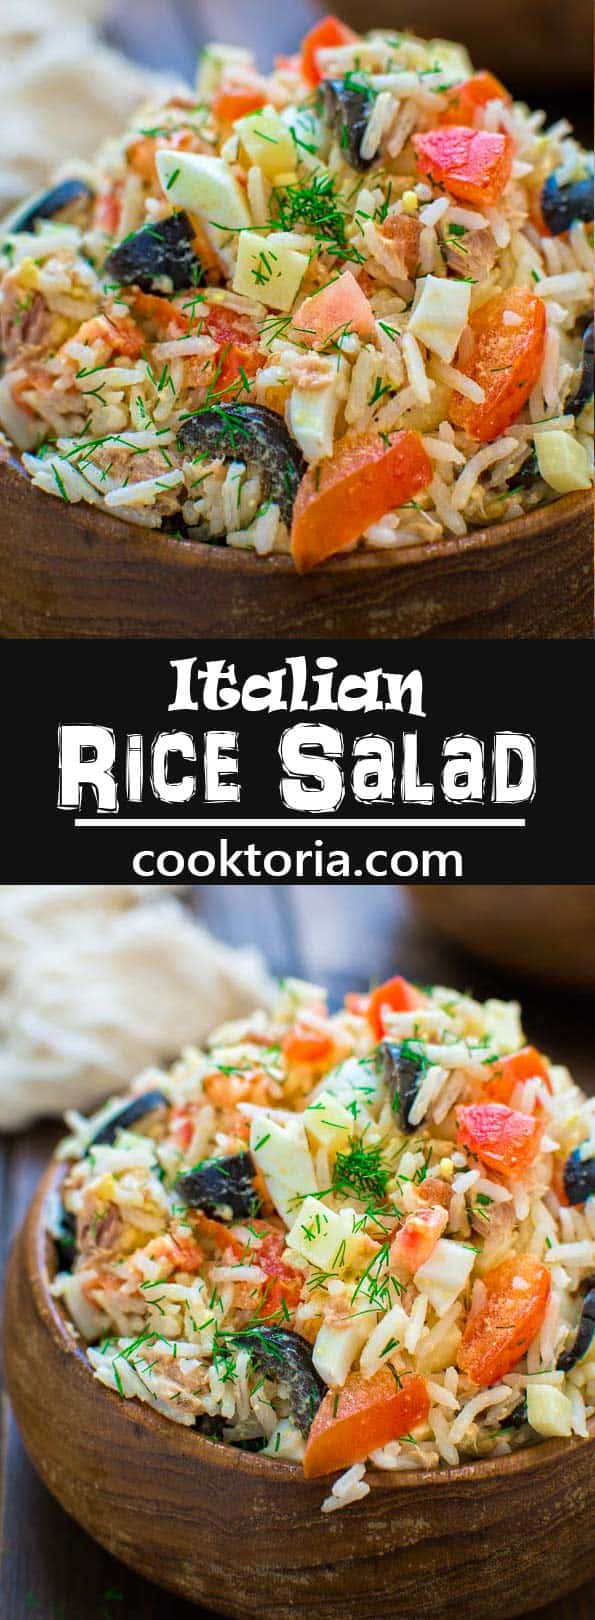 White rice mixed with tuna, fresh tomatoes, Swiss cheese, olives, and eggs, make this Italian Rice Salad a great lunch or a light dinner! ❤ COOKTORIA.COM